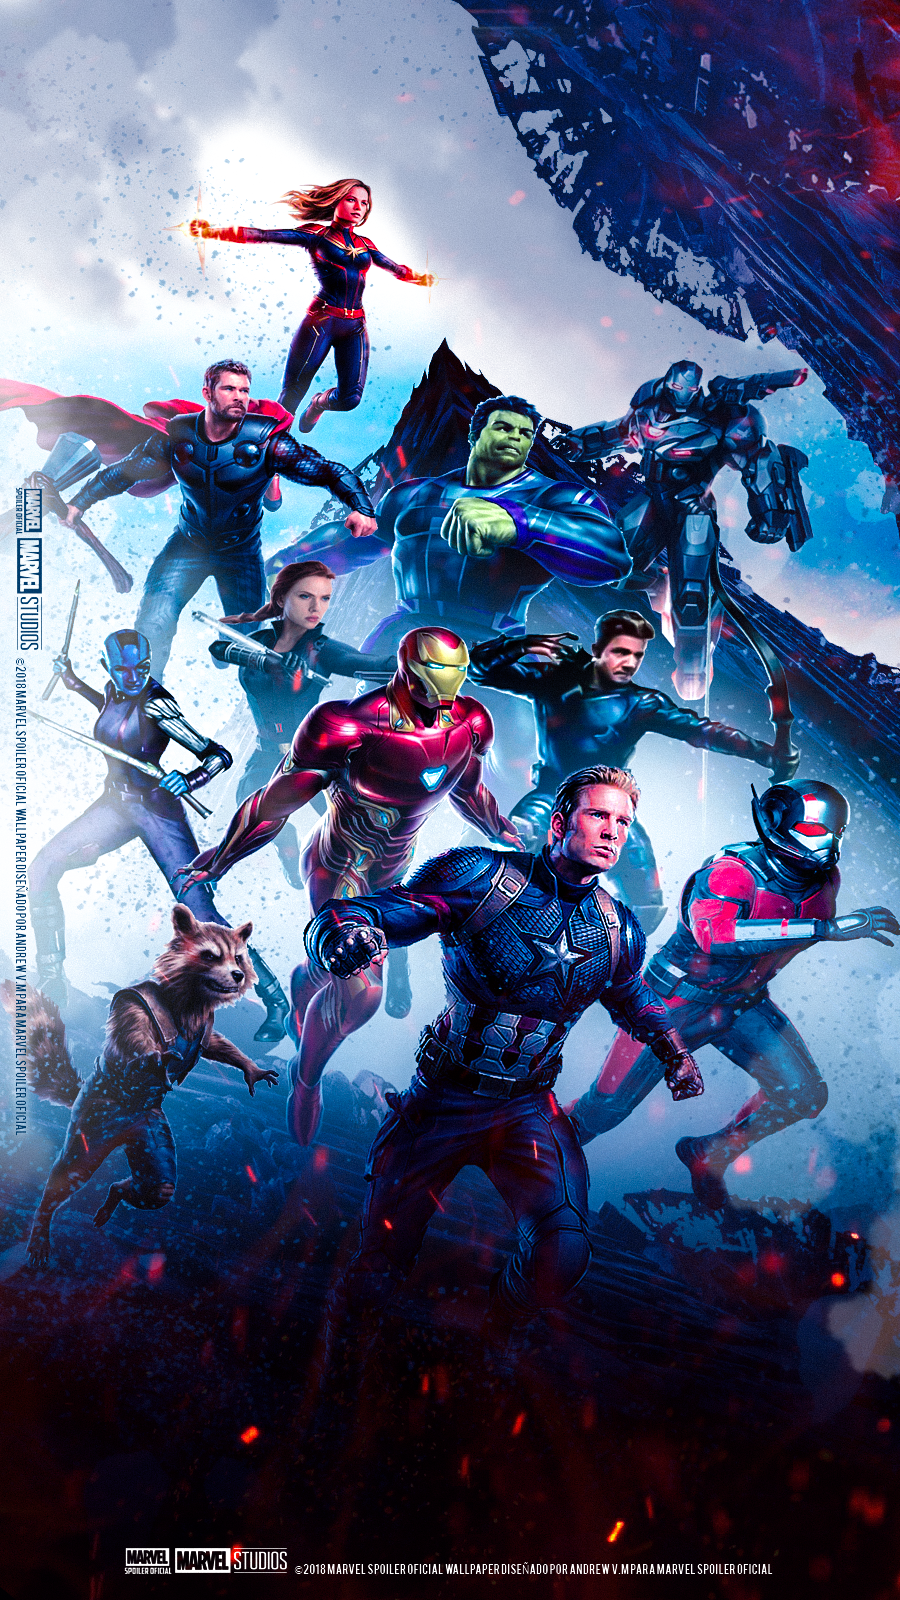 Avengers Endgame Hd Wallpapers Play Movies One